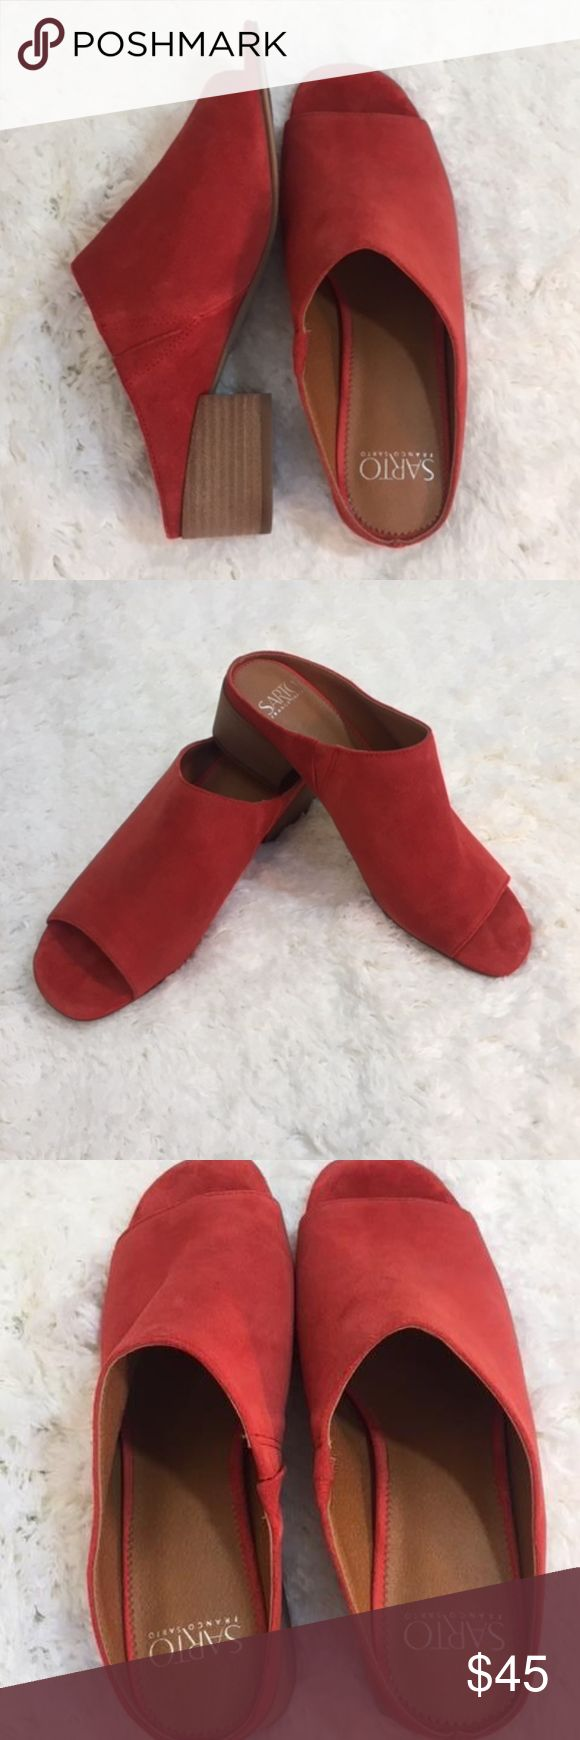 "NWOT Franco Sarto Red Suede Mule NWOT Suede. The color is red/orange color. Very pretty and super comfy!  Size: 8 1/2 Heel Height: 1 3/4"" Franco Sarto Shoes #mules & Clogs"